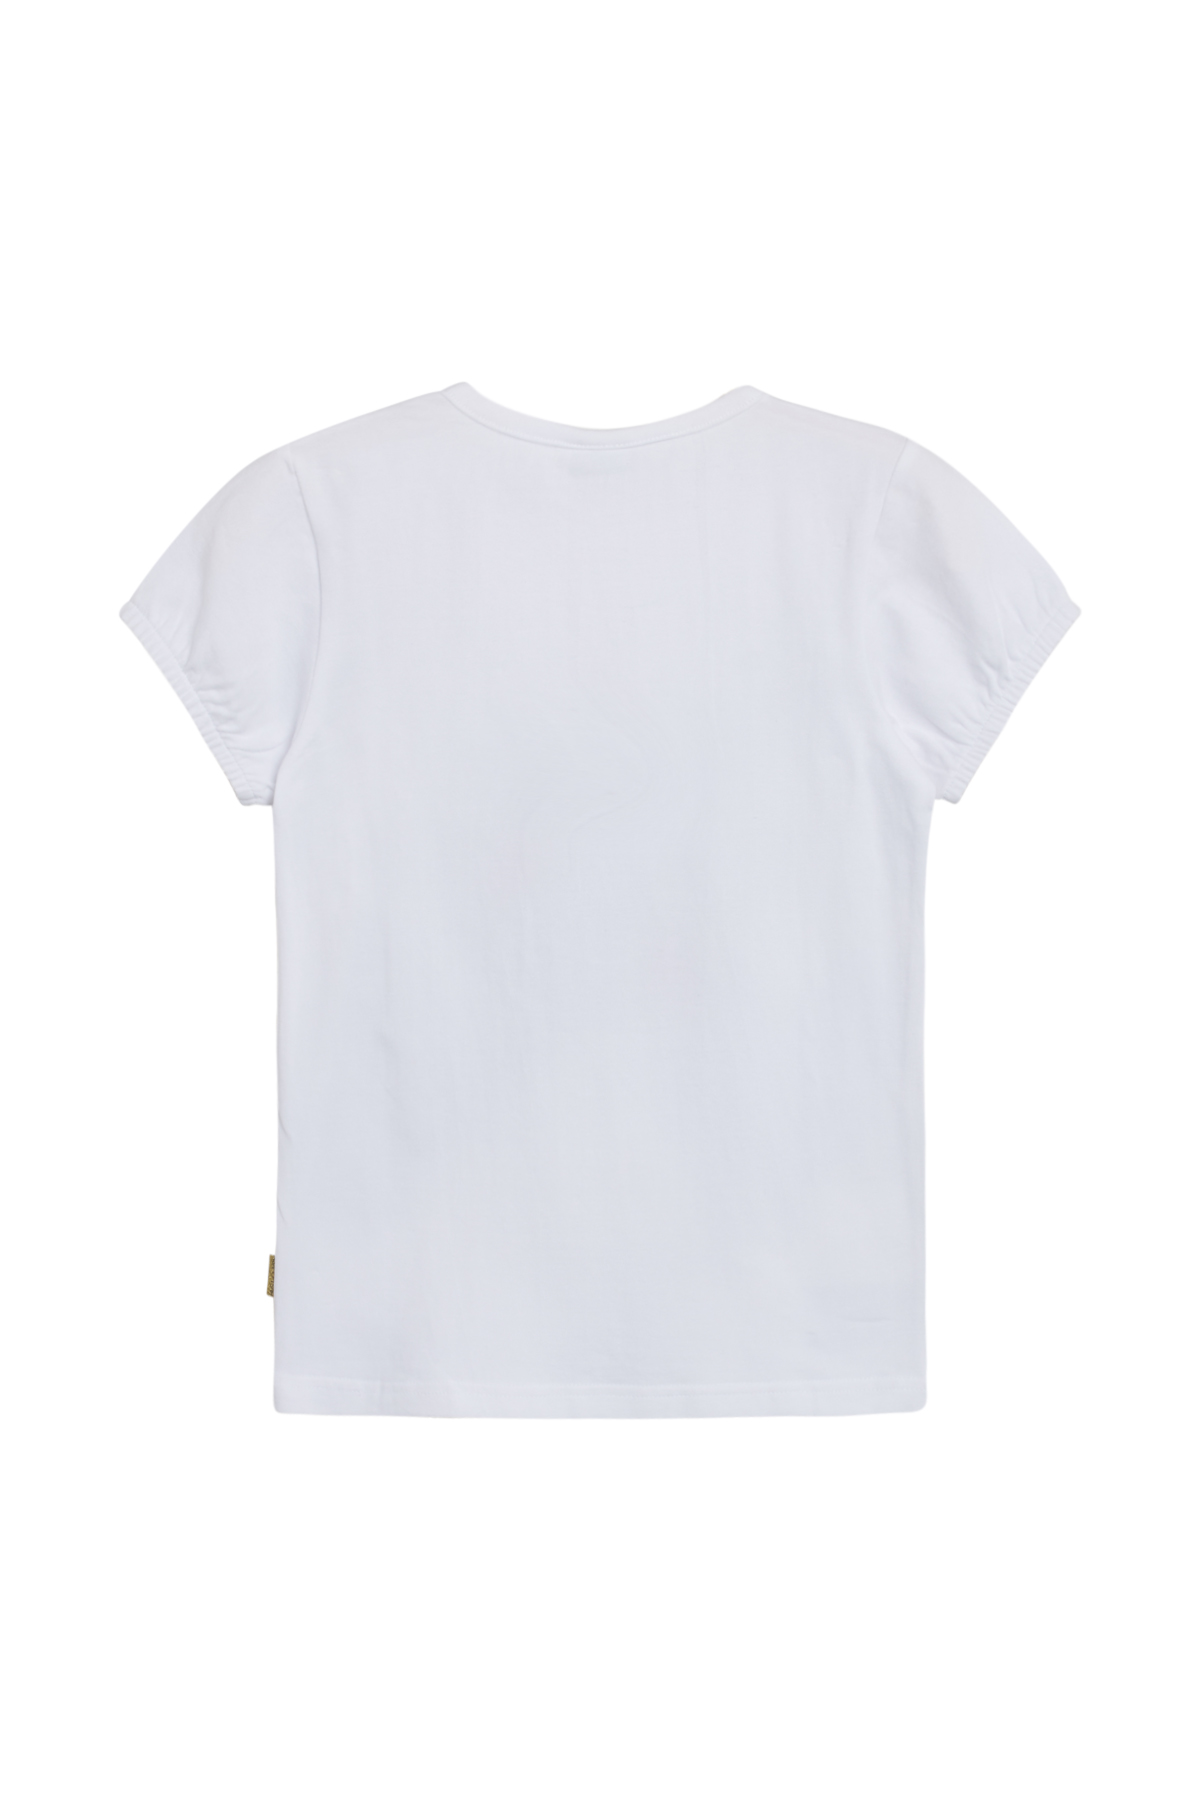 Hust and Claire Alisa t-shirt, White, 110